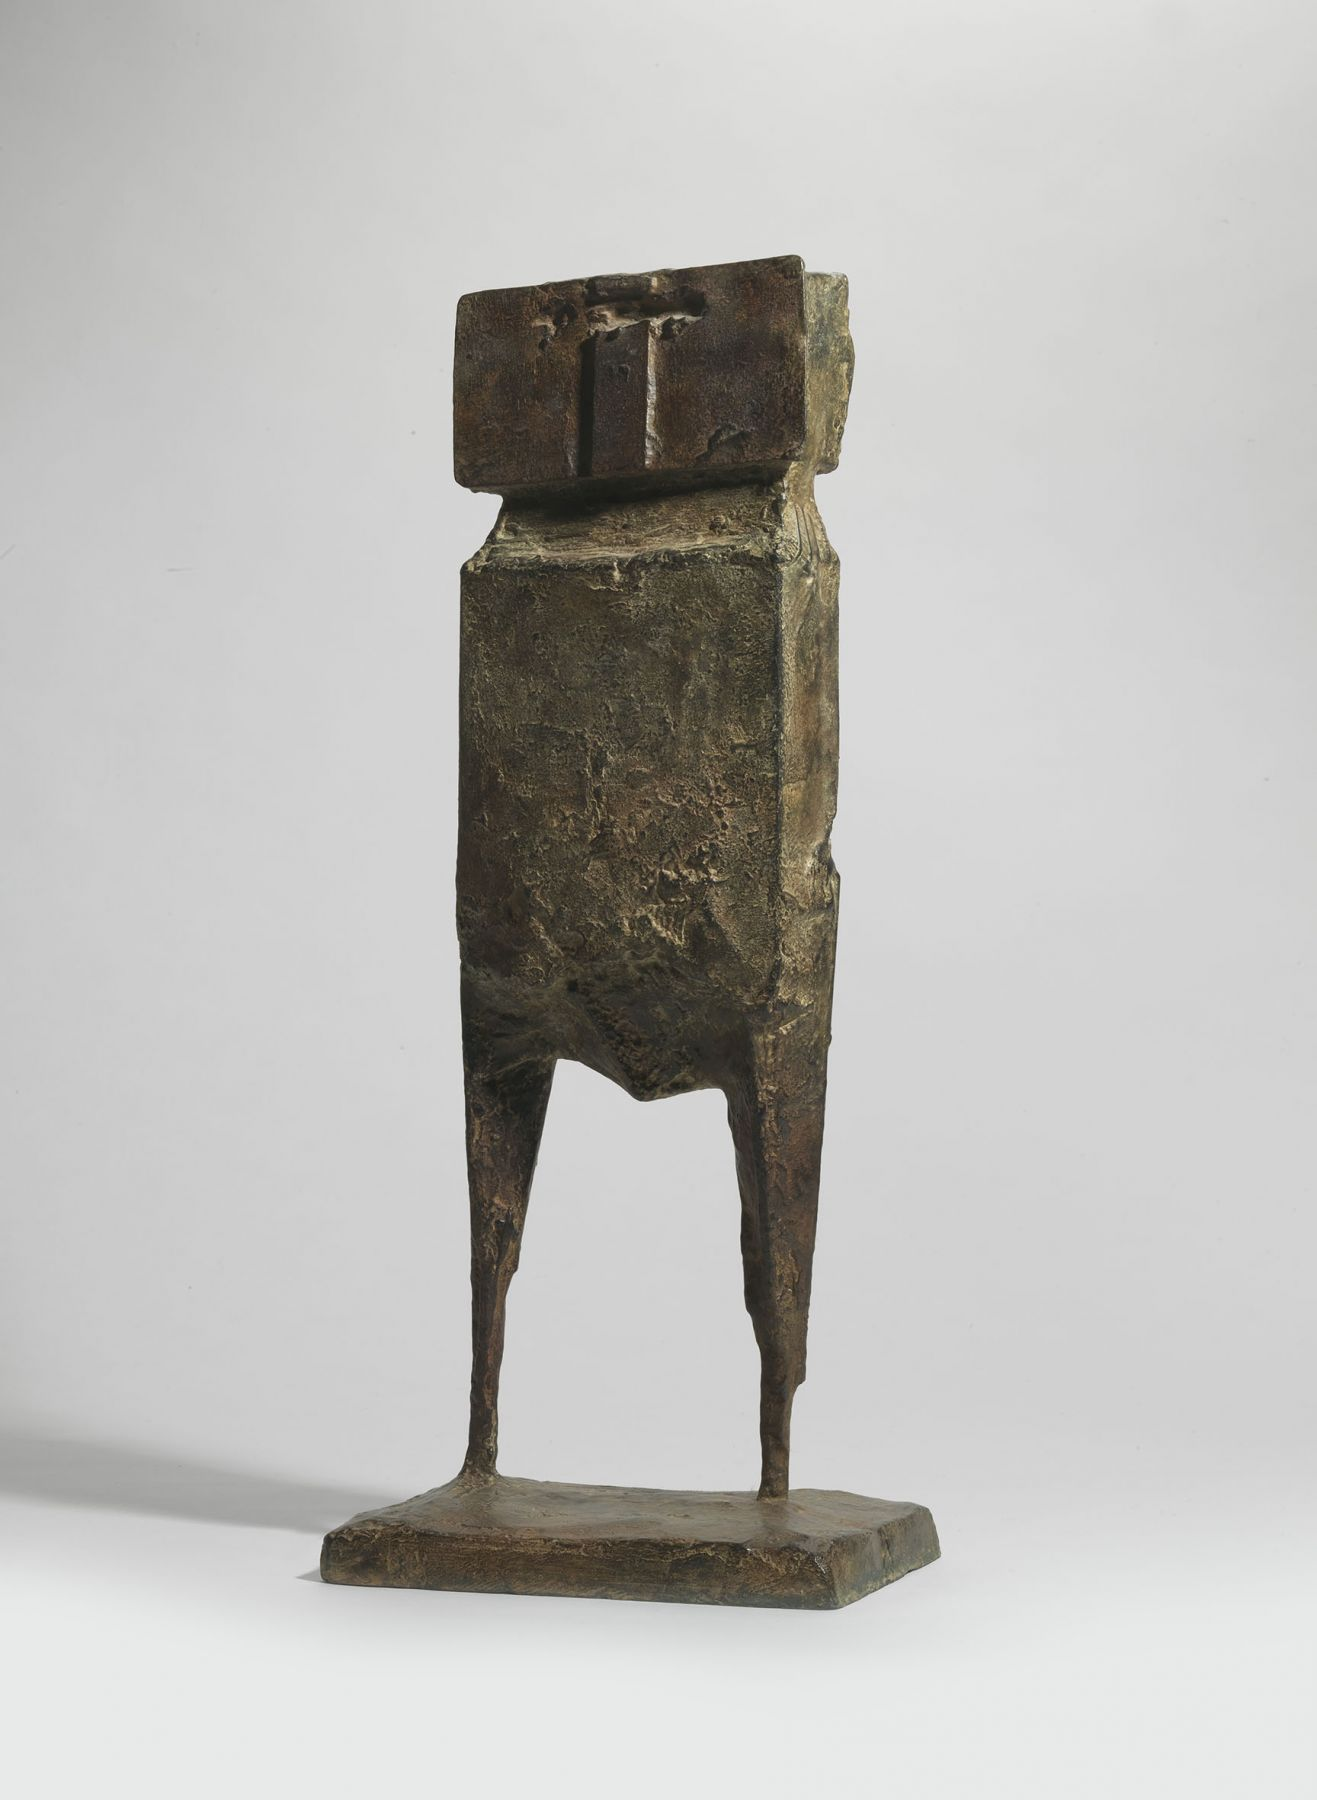 Lynn Chadwick, Aga Cant - Old Watcher, 1959, Bronze ,58 by 24 by 16.5 cm (23 by 9 ½ by 6 ½ in.)